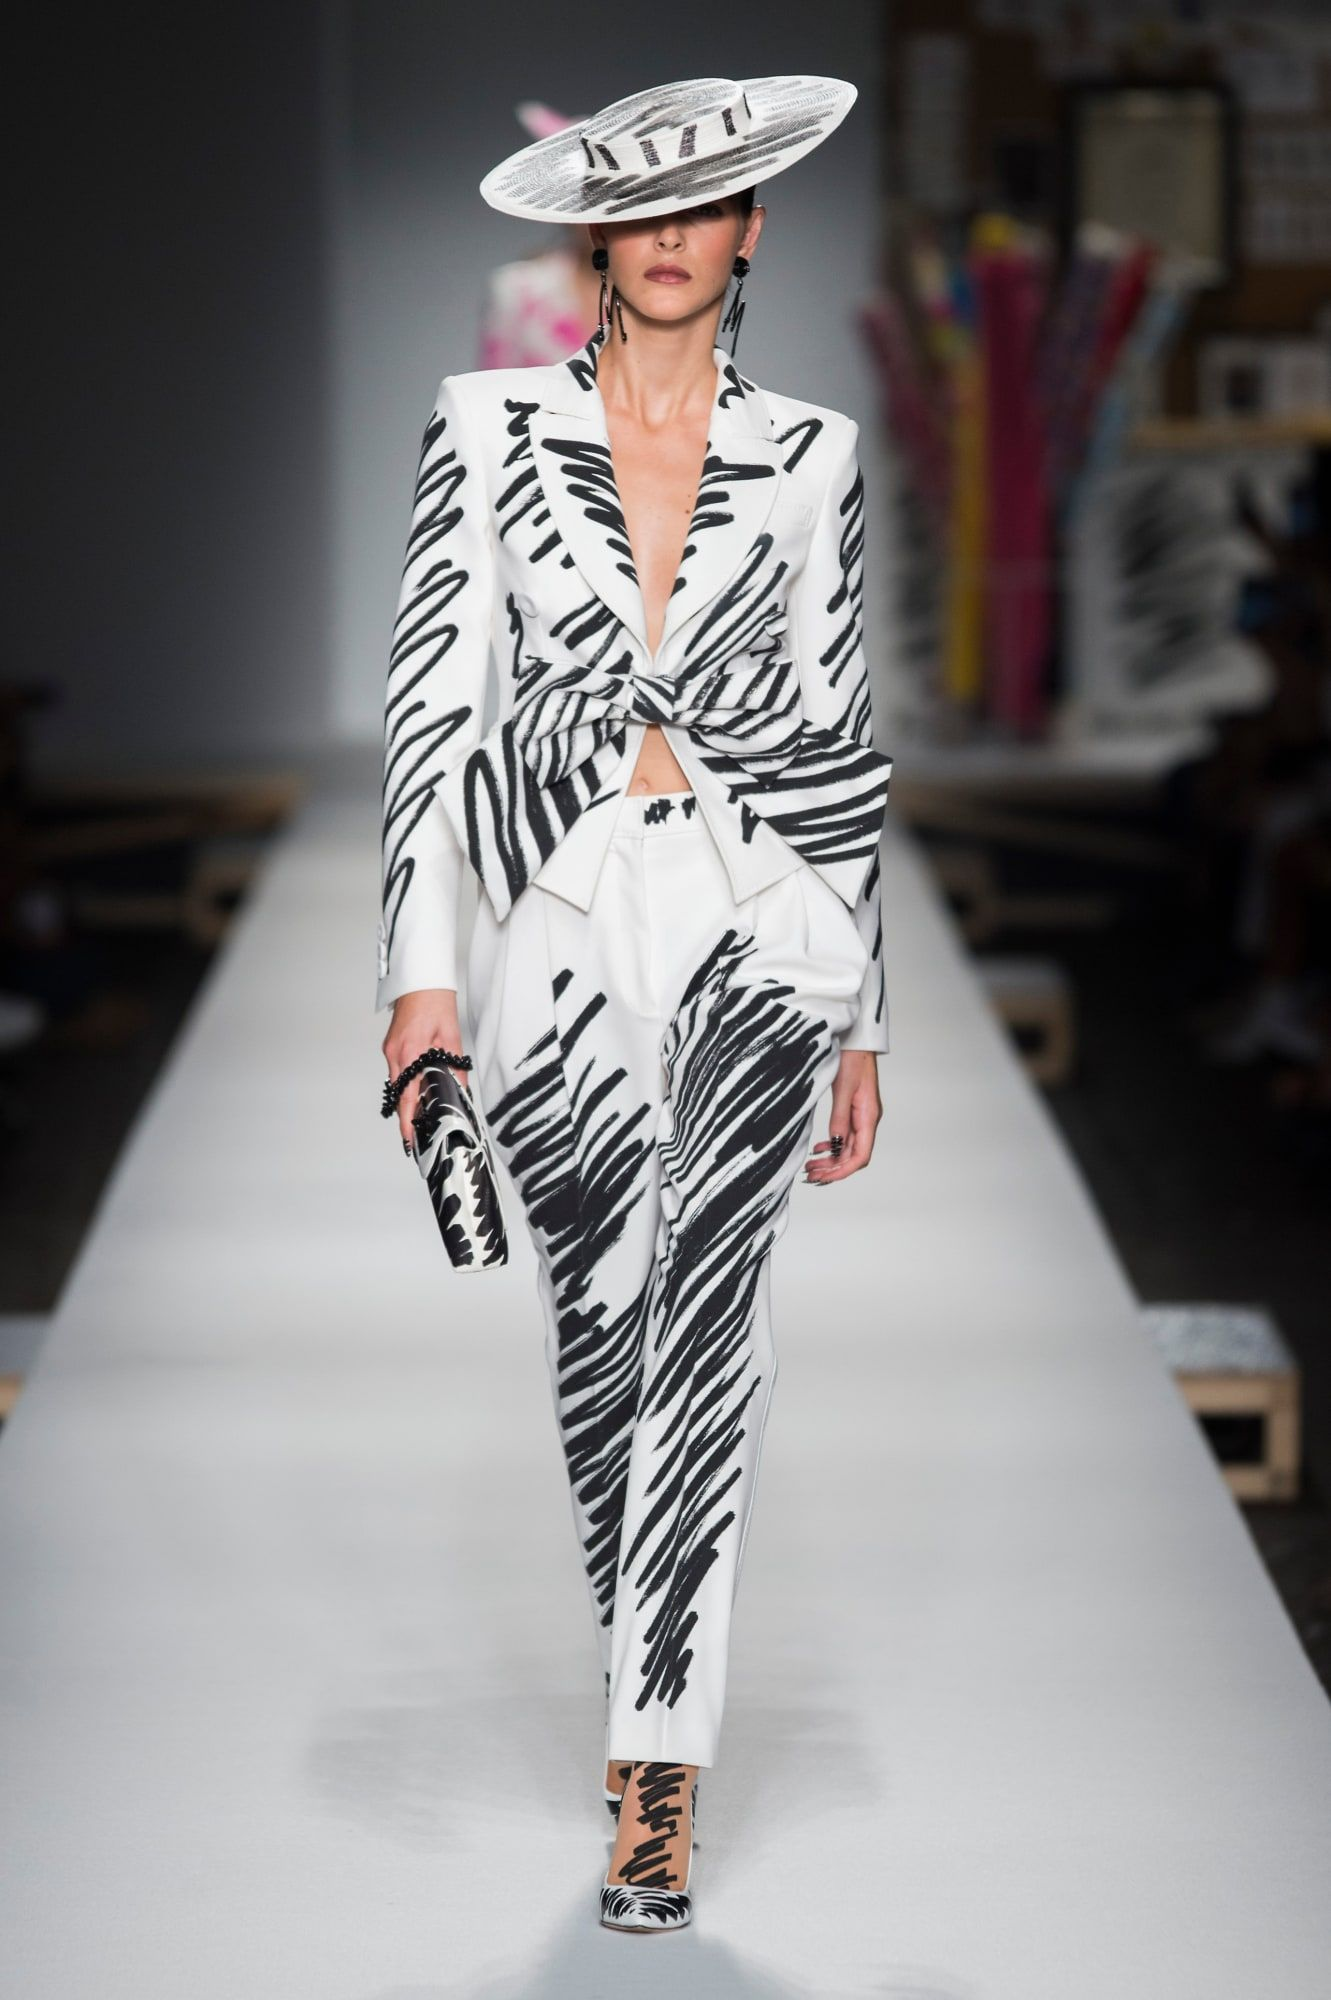 a8b7d639ce924 The Top 7 Trends From Milan Fashion Week Spring 2019   assignment ...